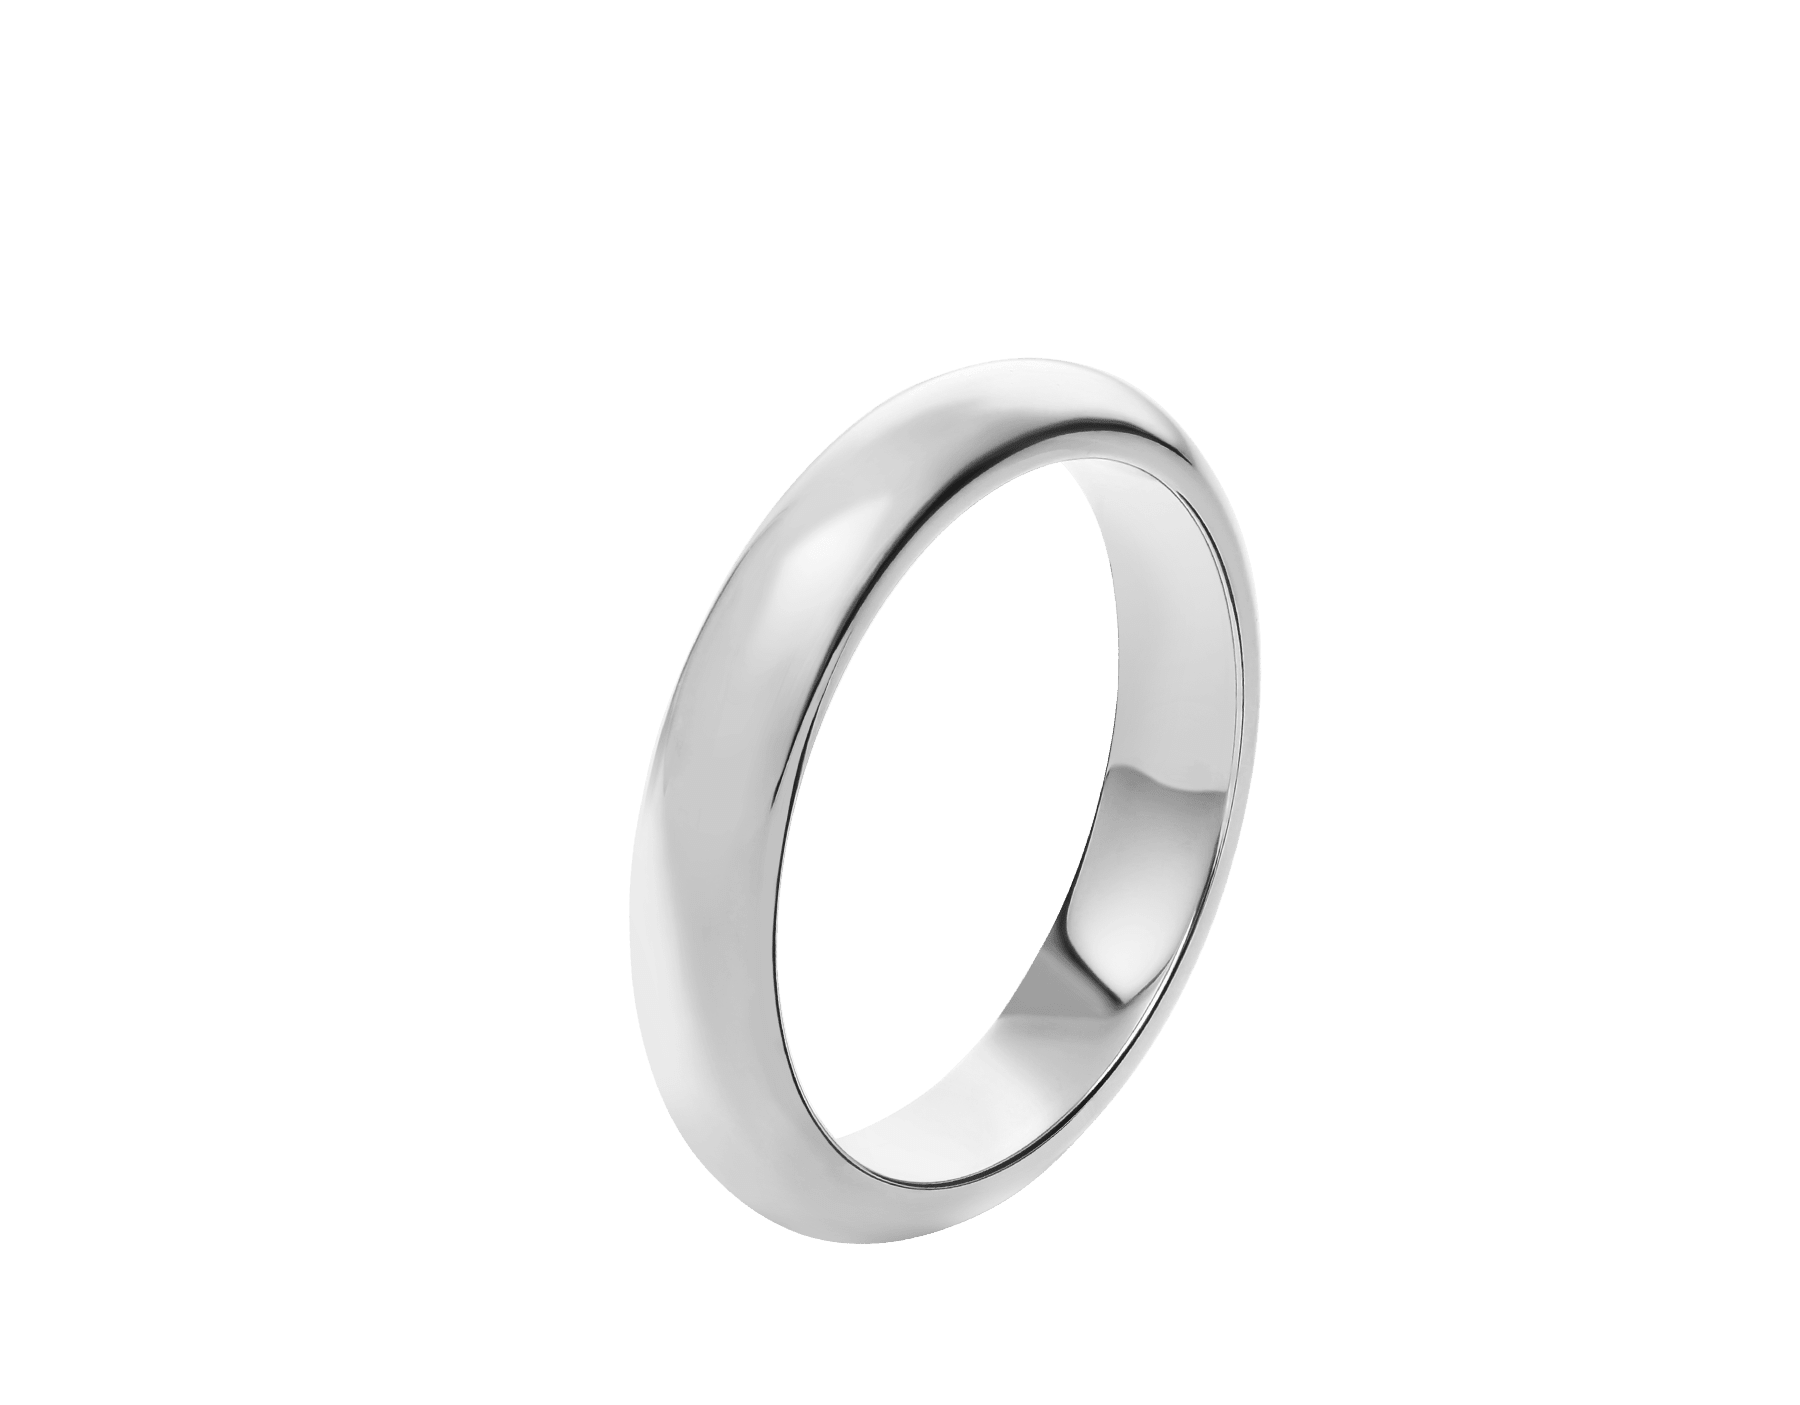 Fedi Wedding Band in platinum AN852824 image 1